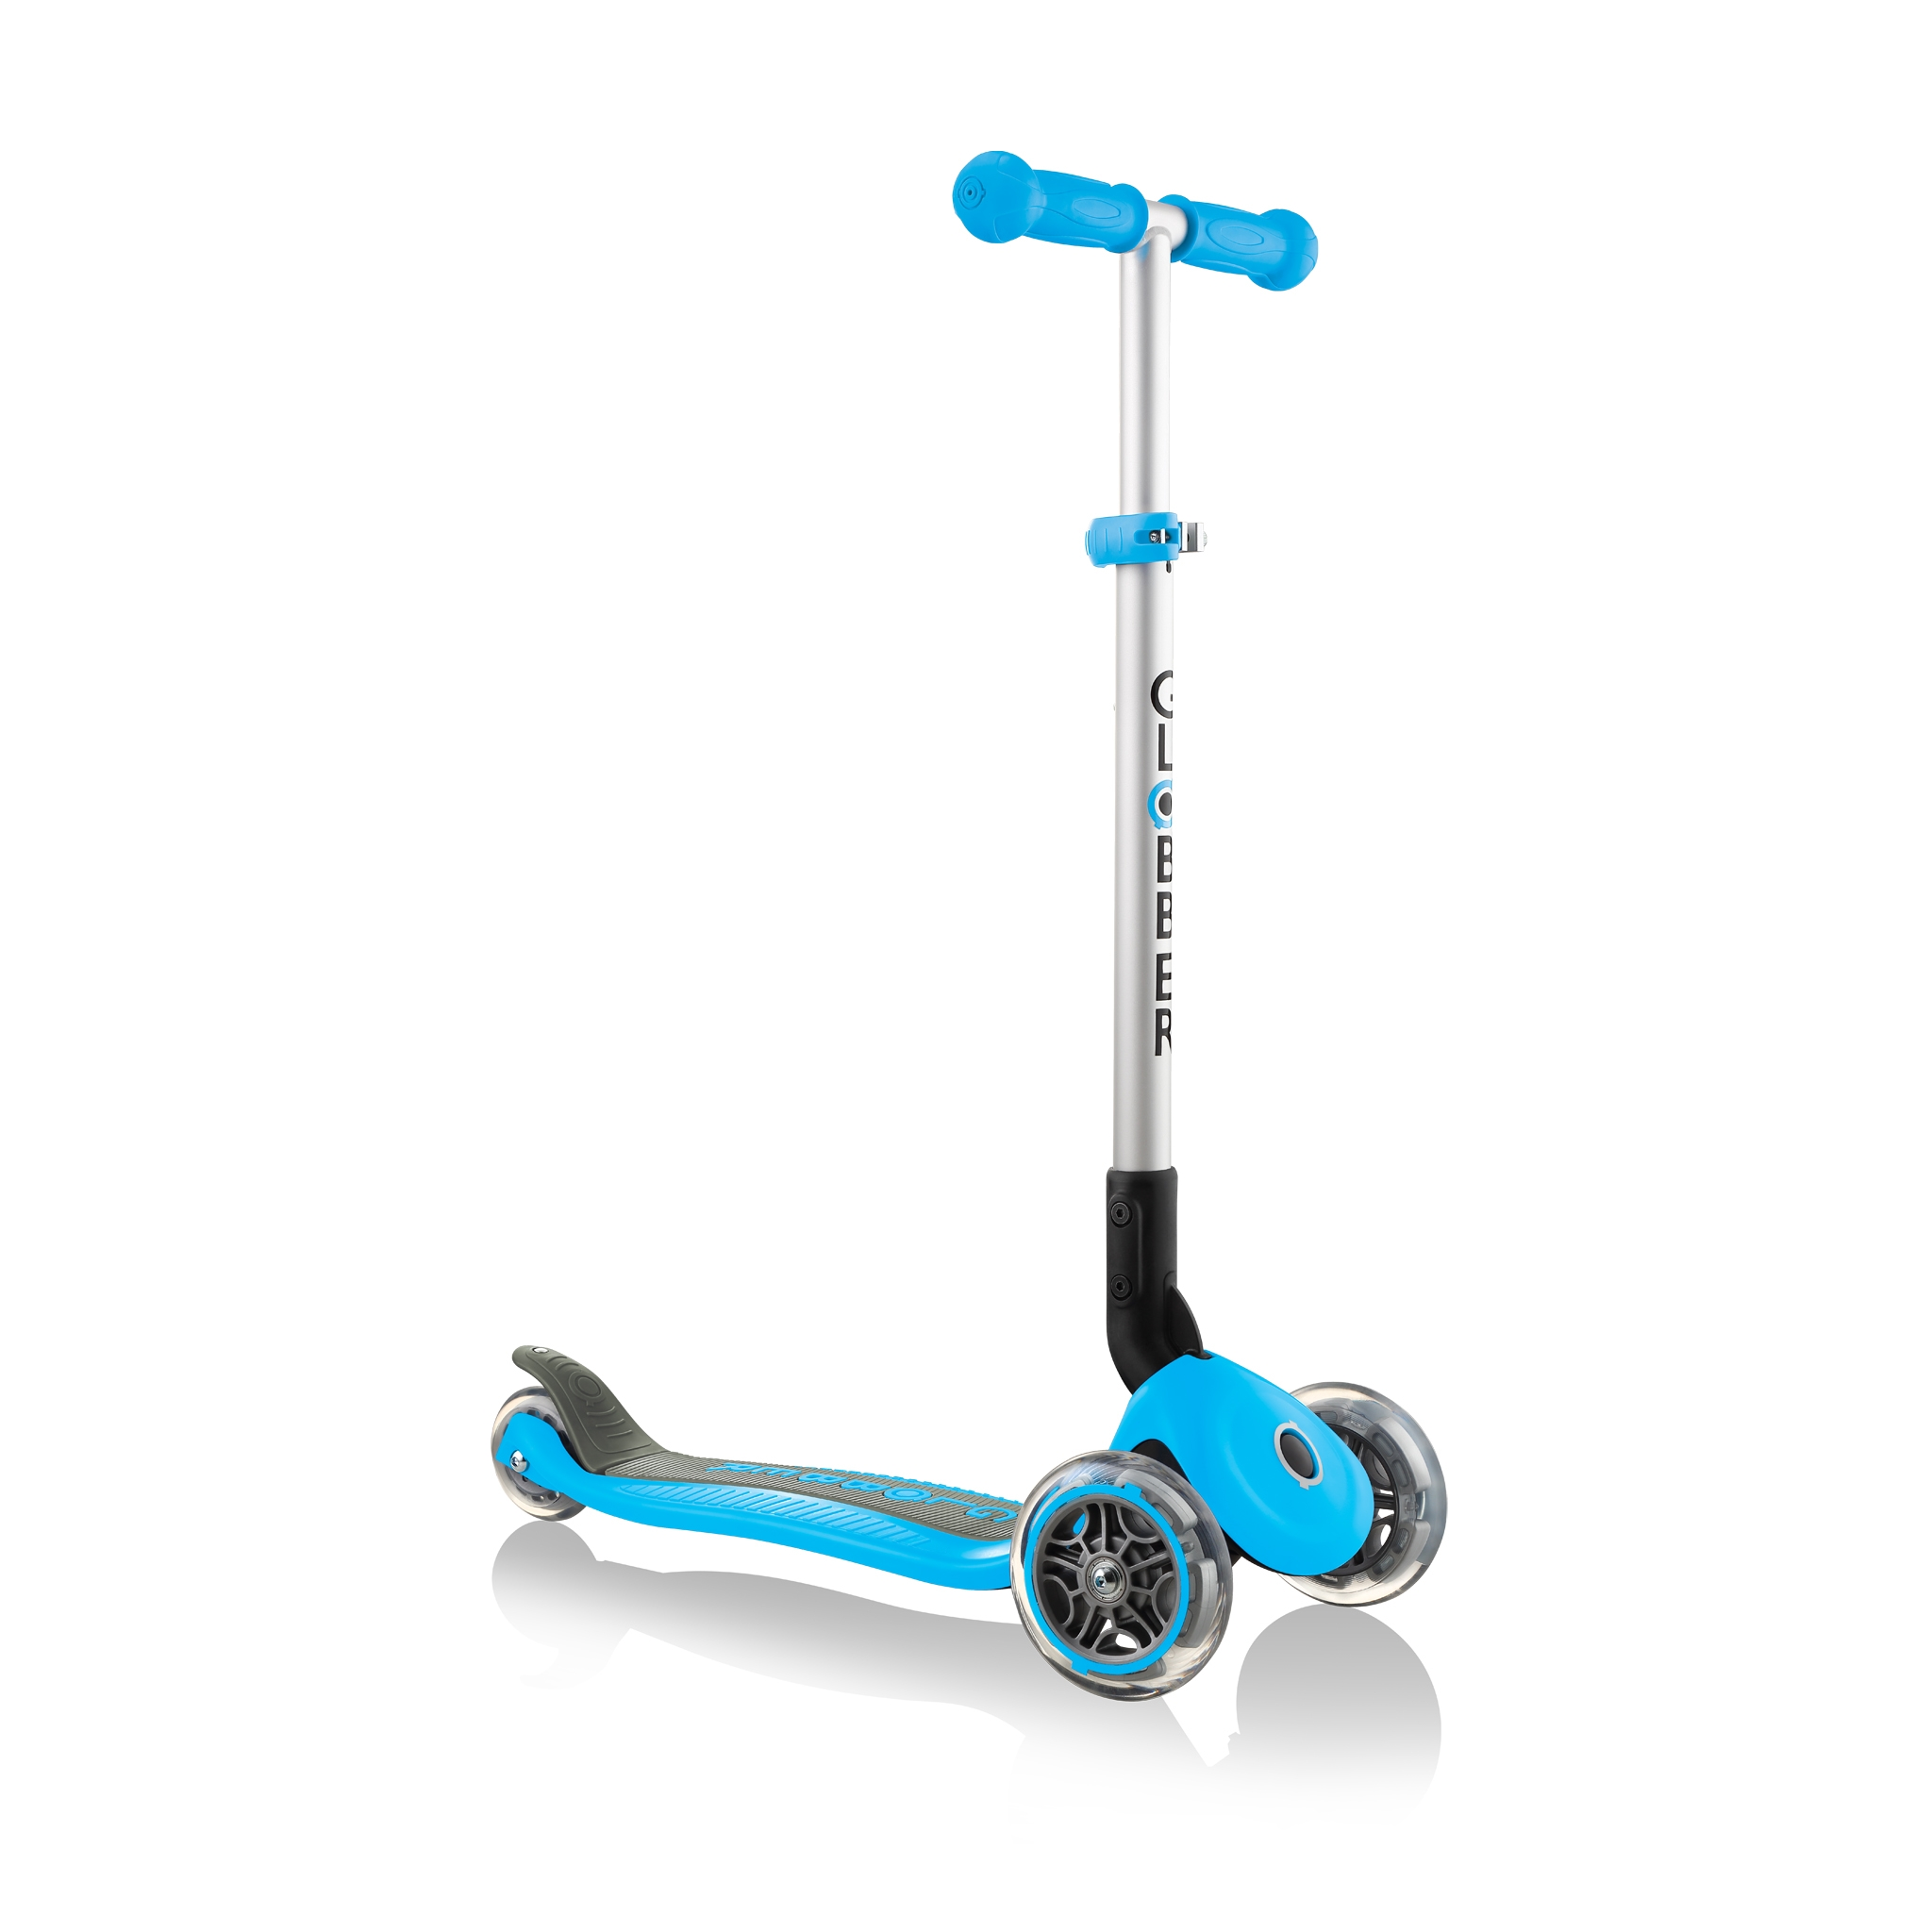 PRIMO-FOLDABLE-3-wheel-foldable-scooter-for-kids-sky-blue